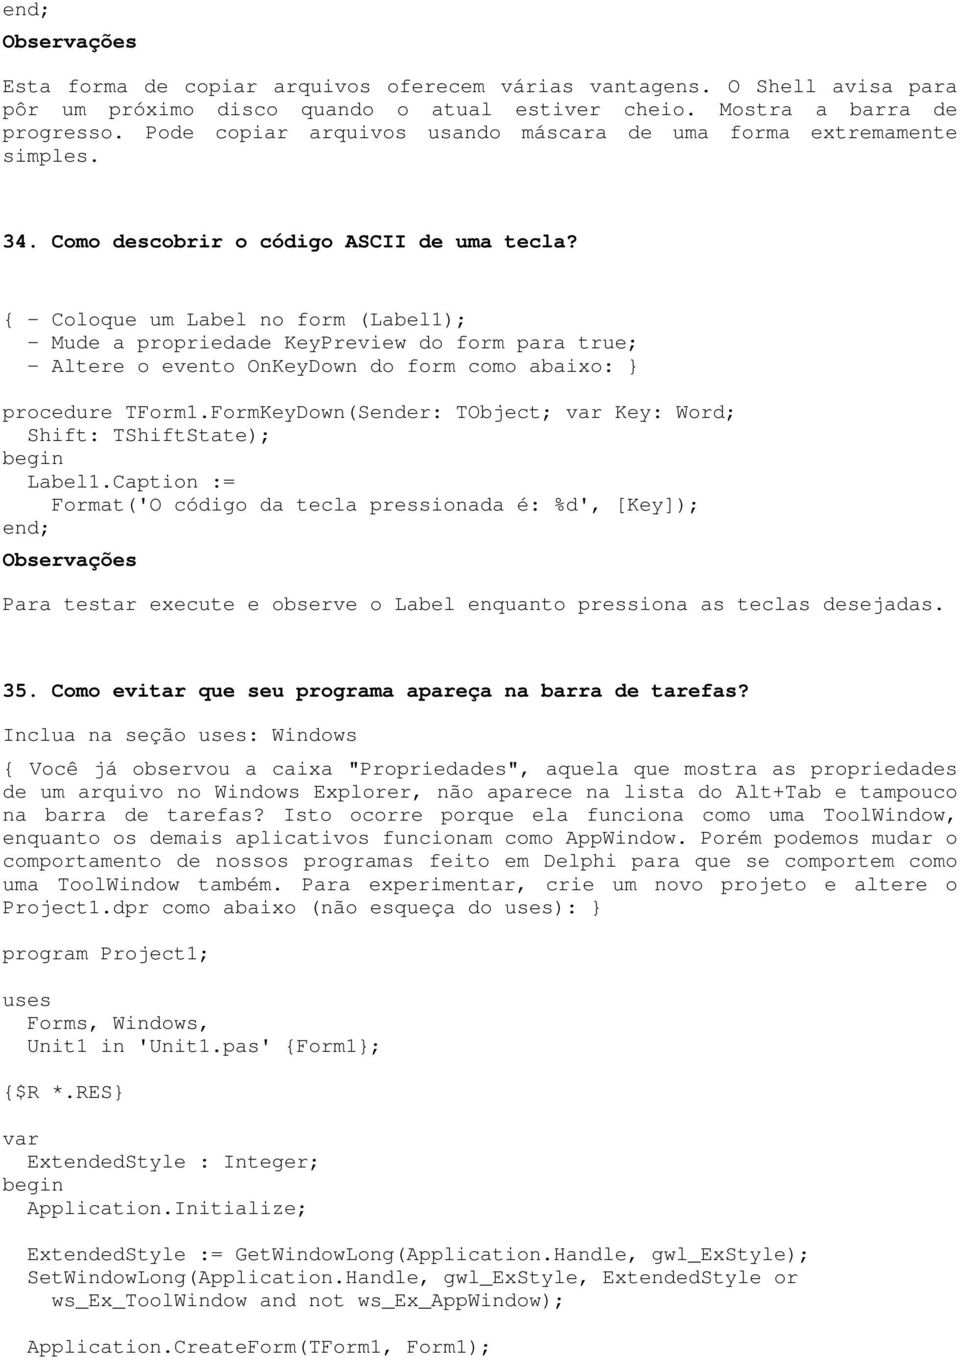 { - Coloque um Label no form (Label1); - Mude a propriedade KeyPreview do form para true; - Altere o evento OnKeyDown do form como abaixo: } procedure TForm1.